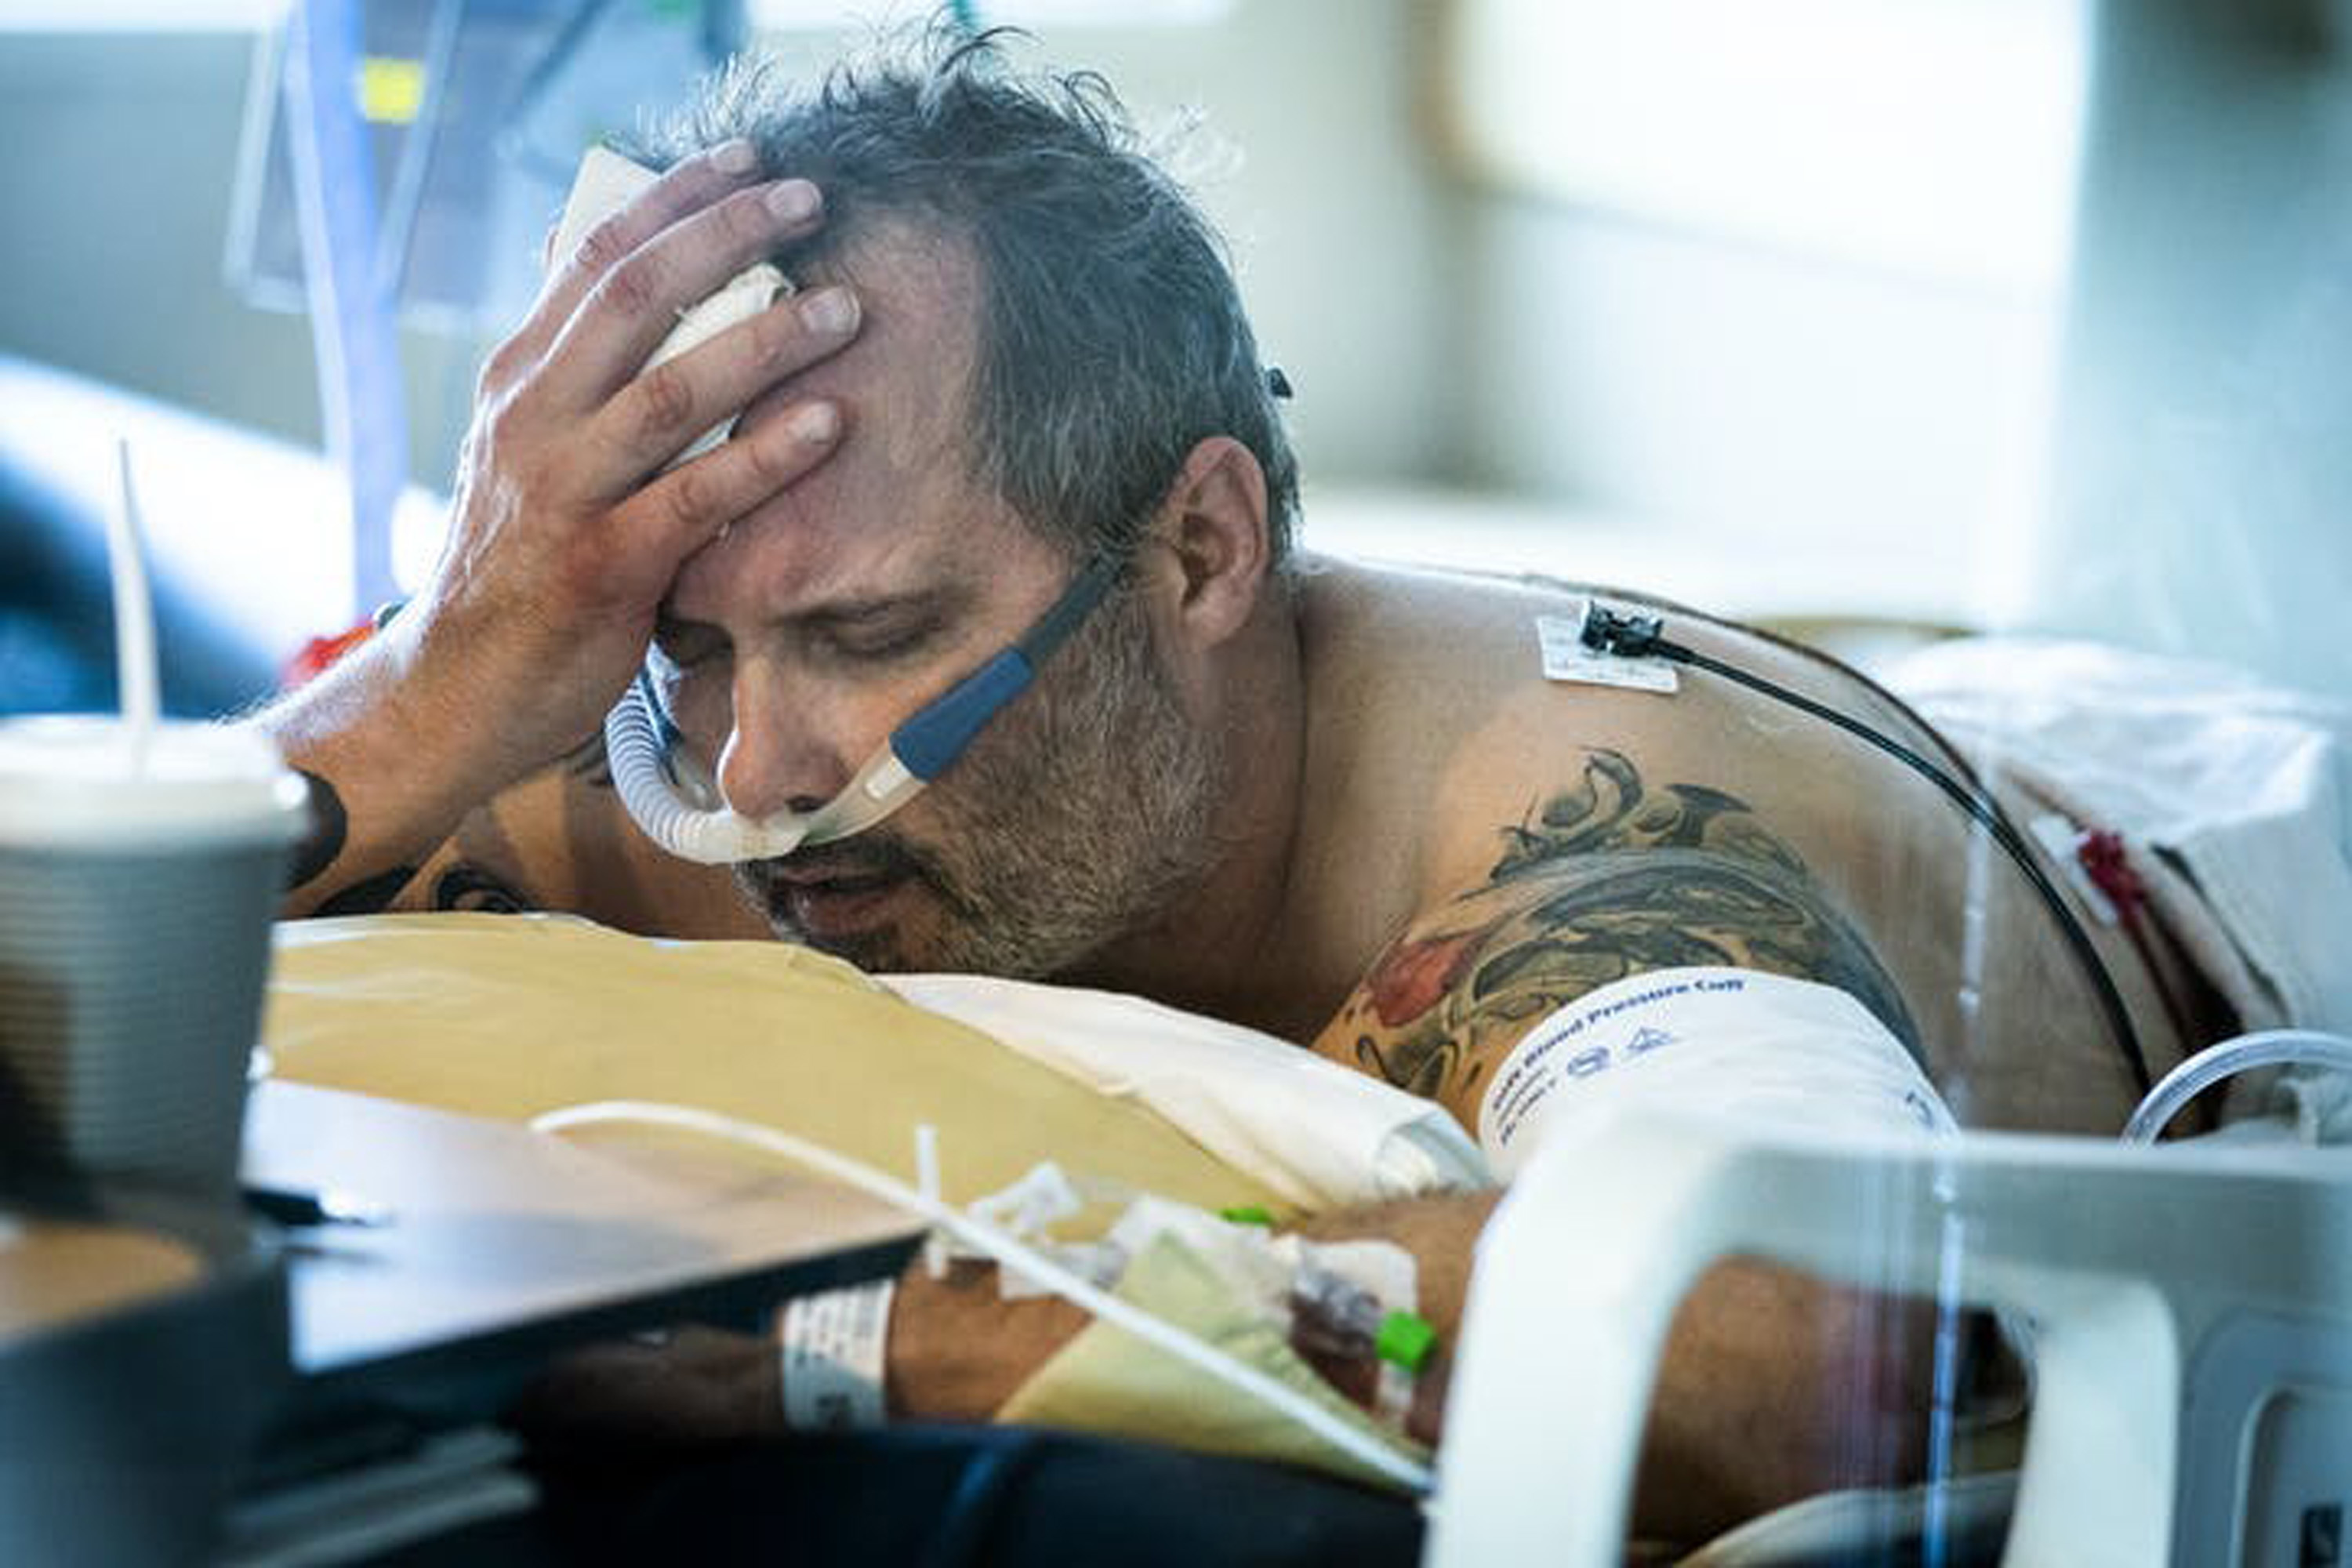 COVID-19 patient Michael Wright lay in his bed in the prone position to increase oxygenation while in the ICU at Regions Hospital in St. Paul.